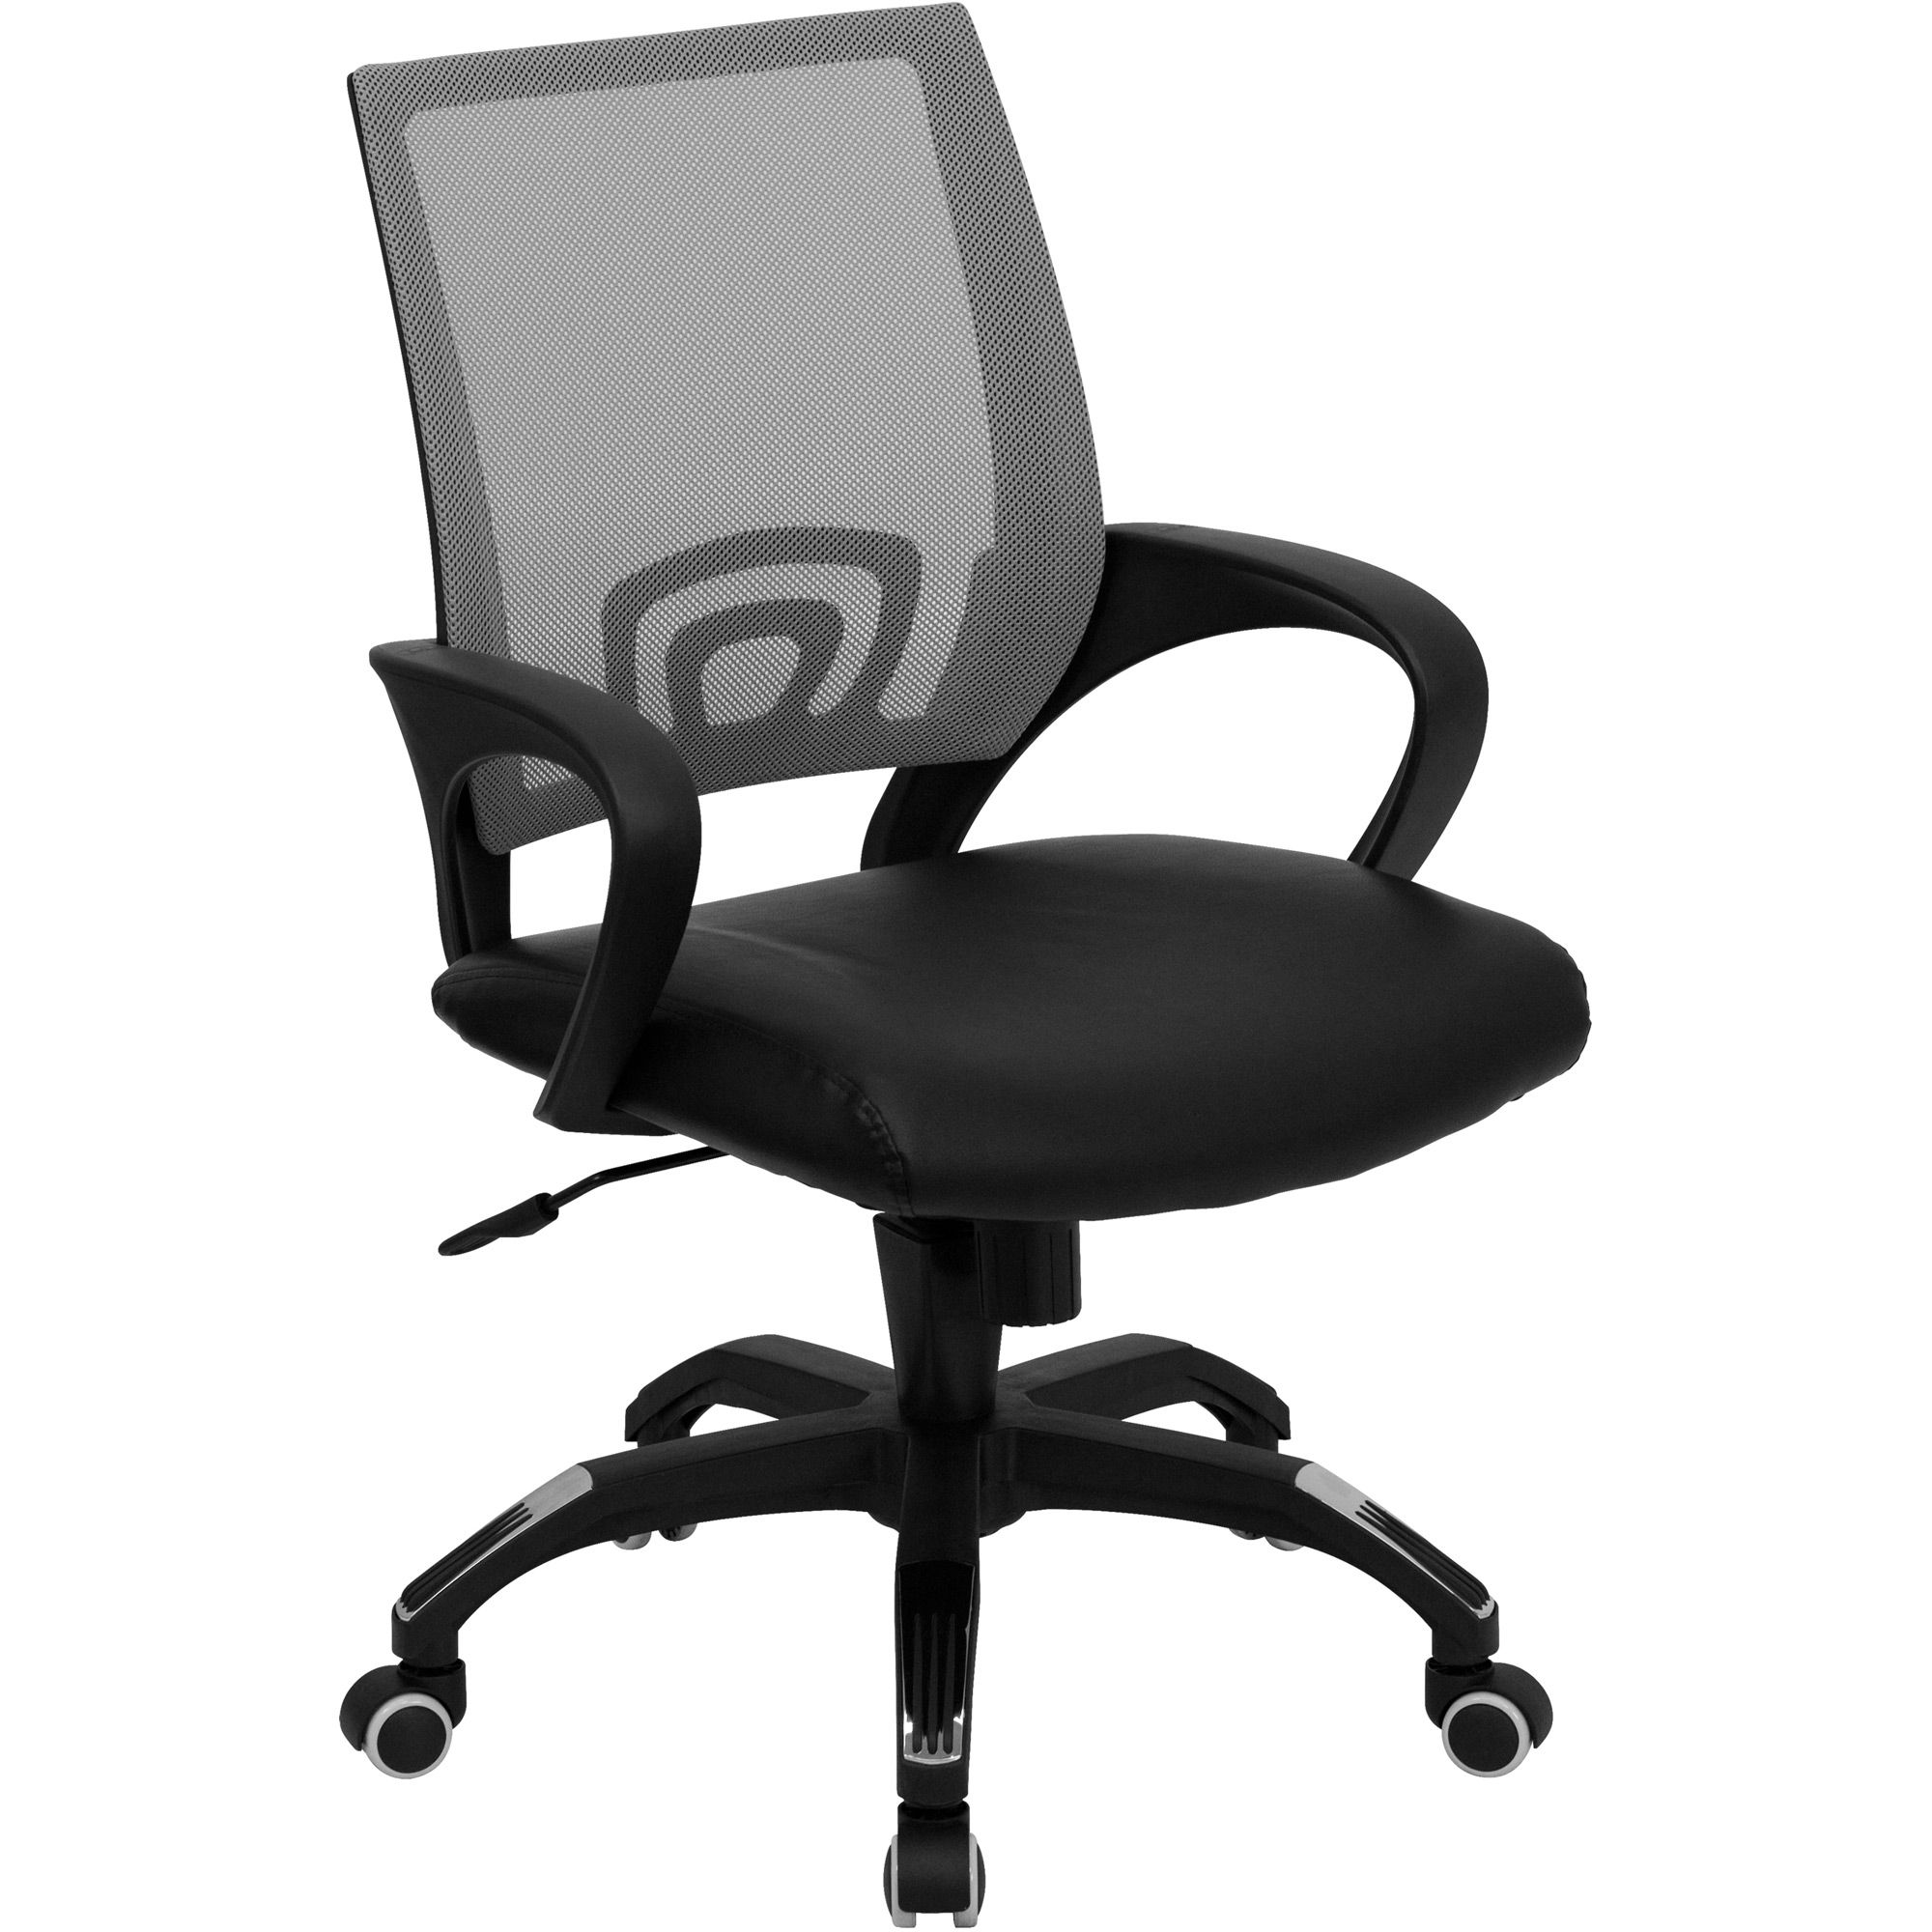 Stupendous The Hotshot Cool Desk Chairs In Grey Offer A Breathable Machost Co Dining Chair Design Ideas Machostcouk